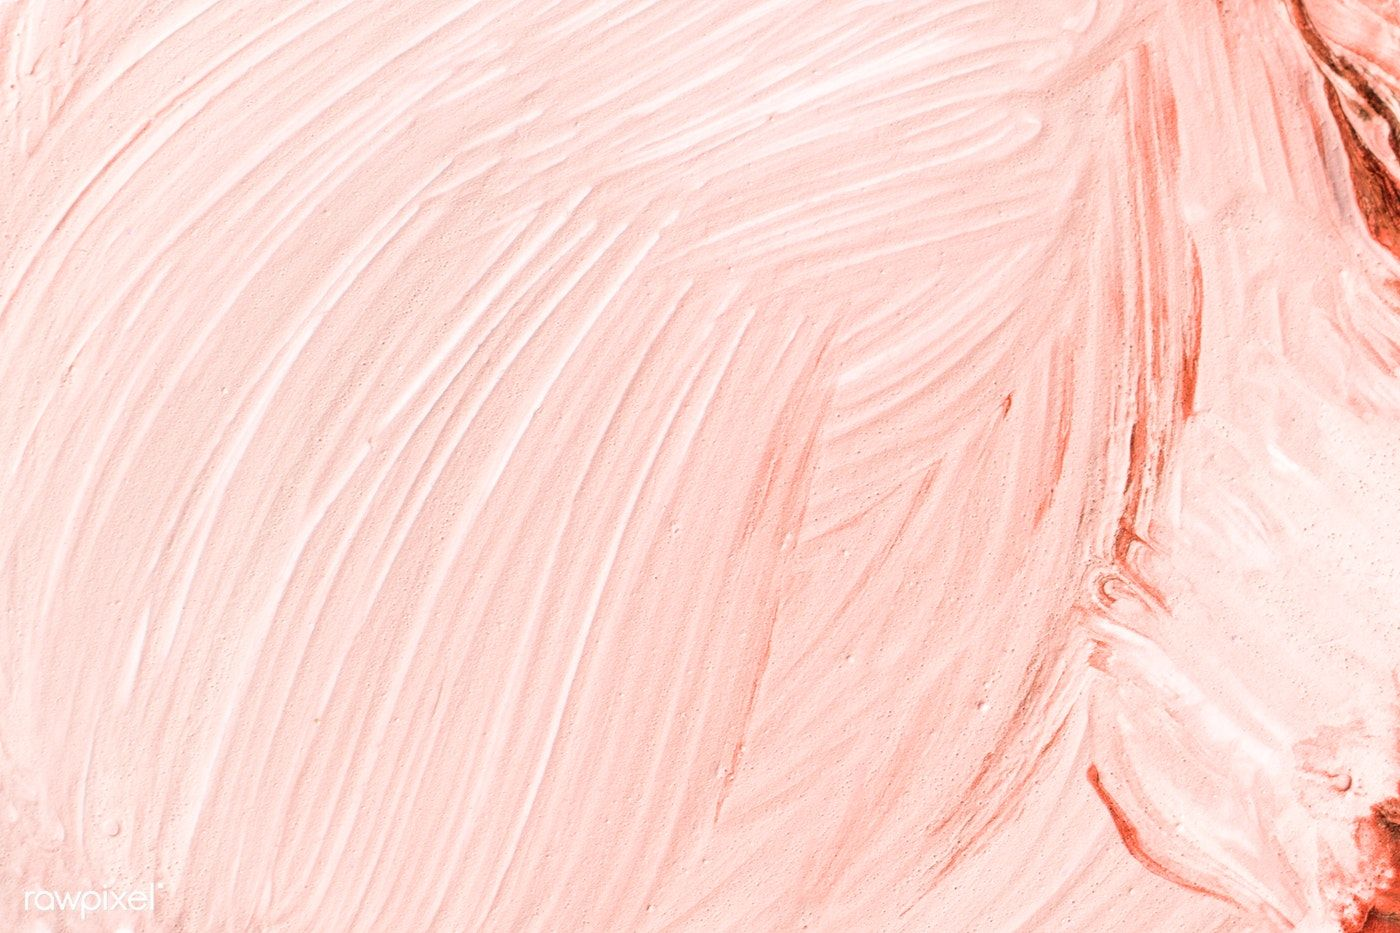 Peach Oil Paint Strokes Textured Background Free Image By